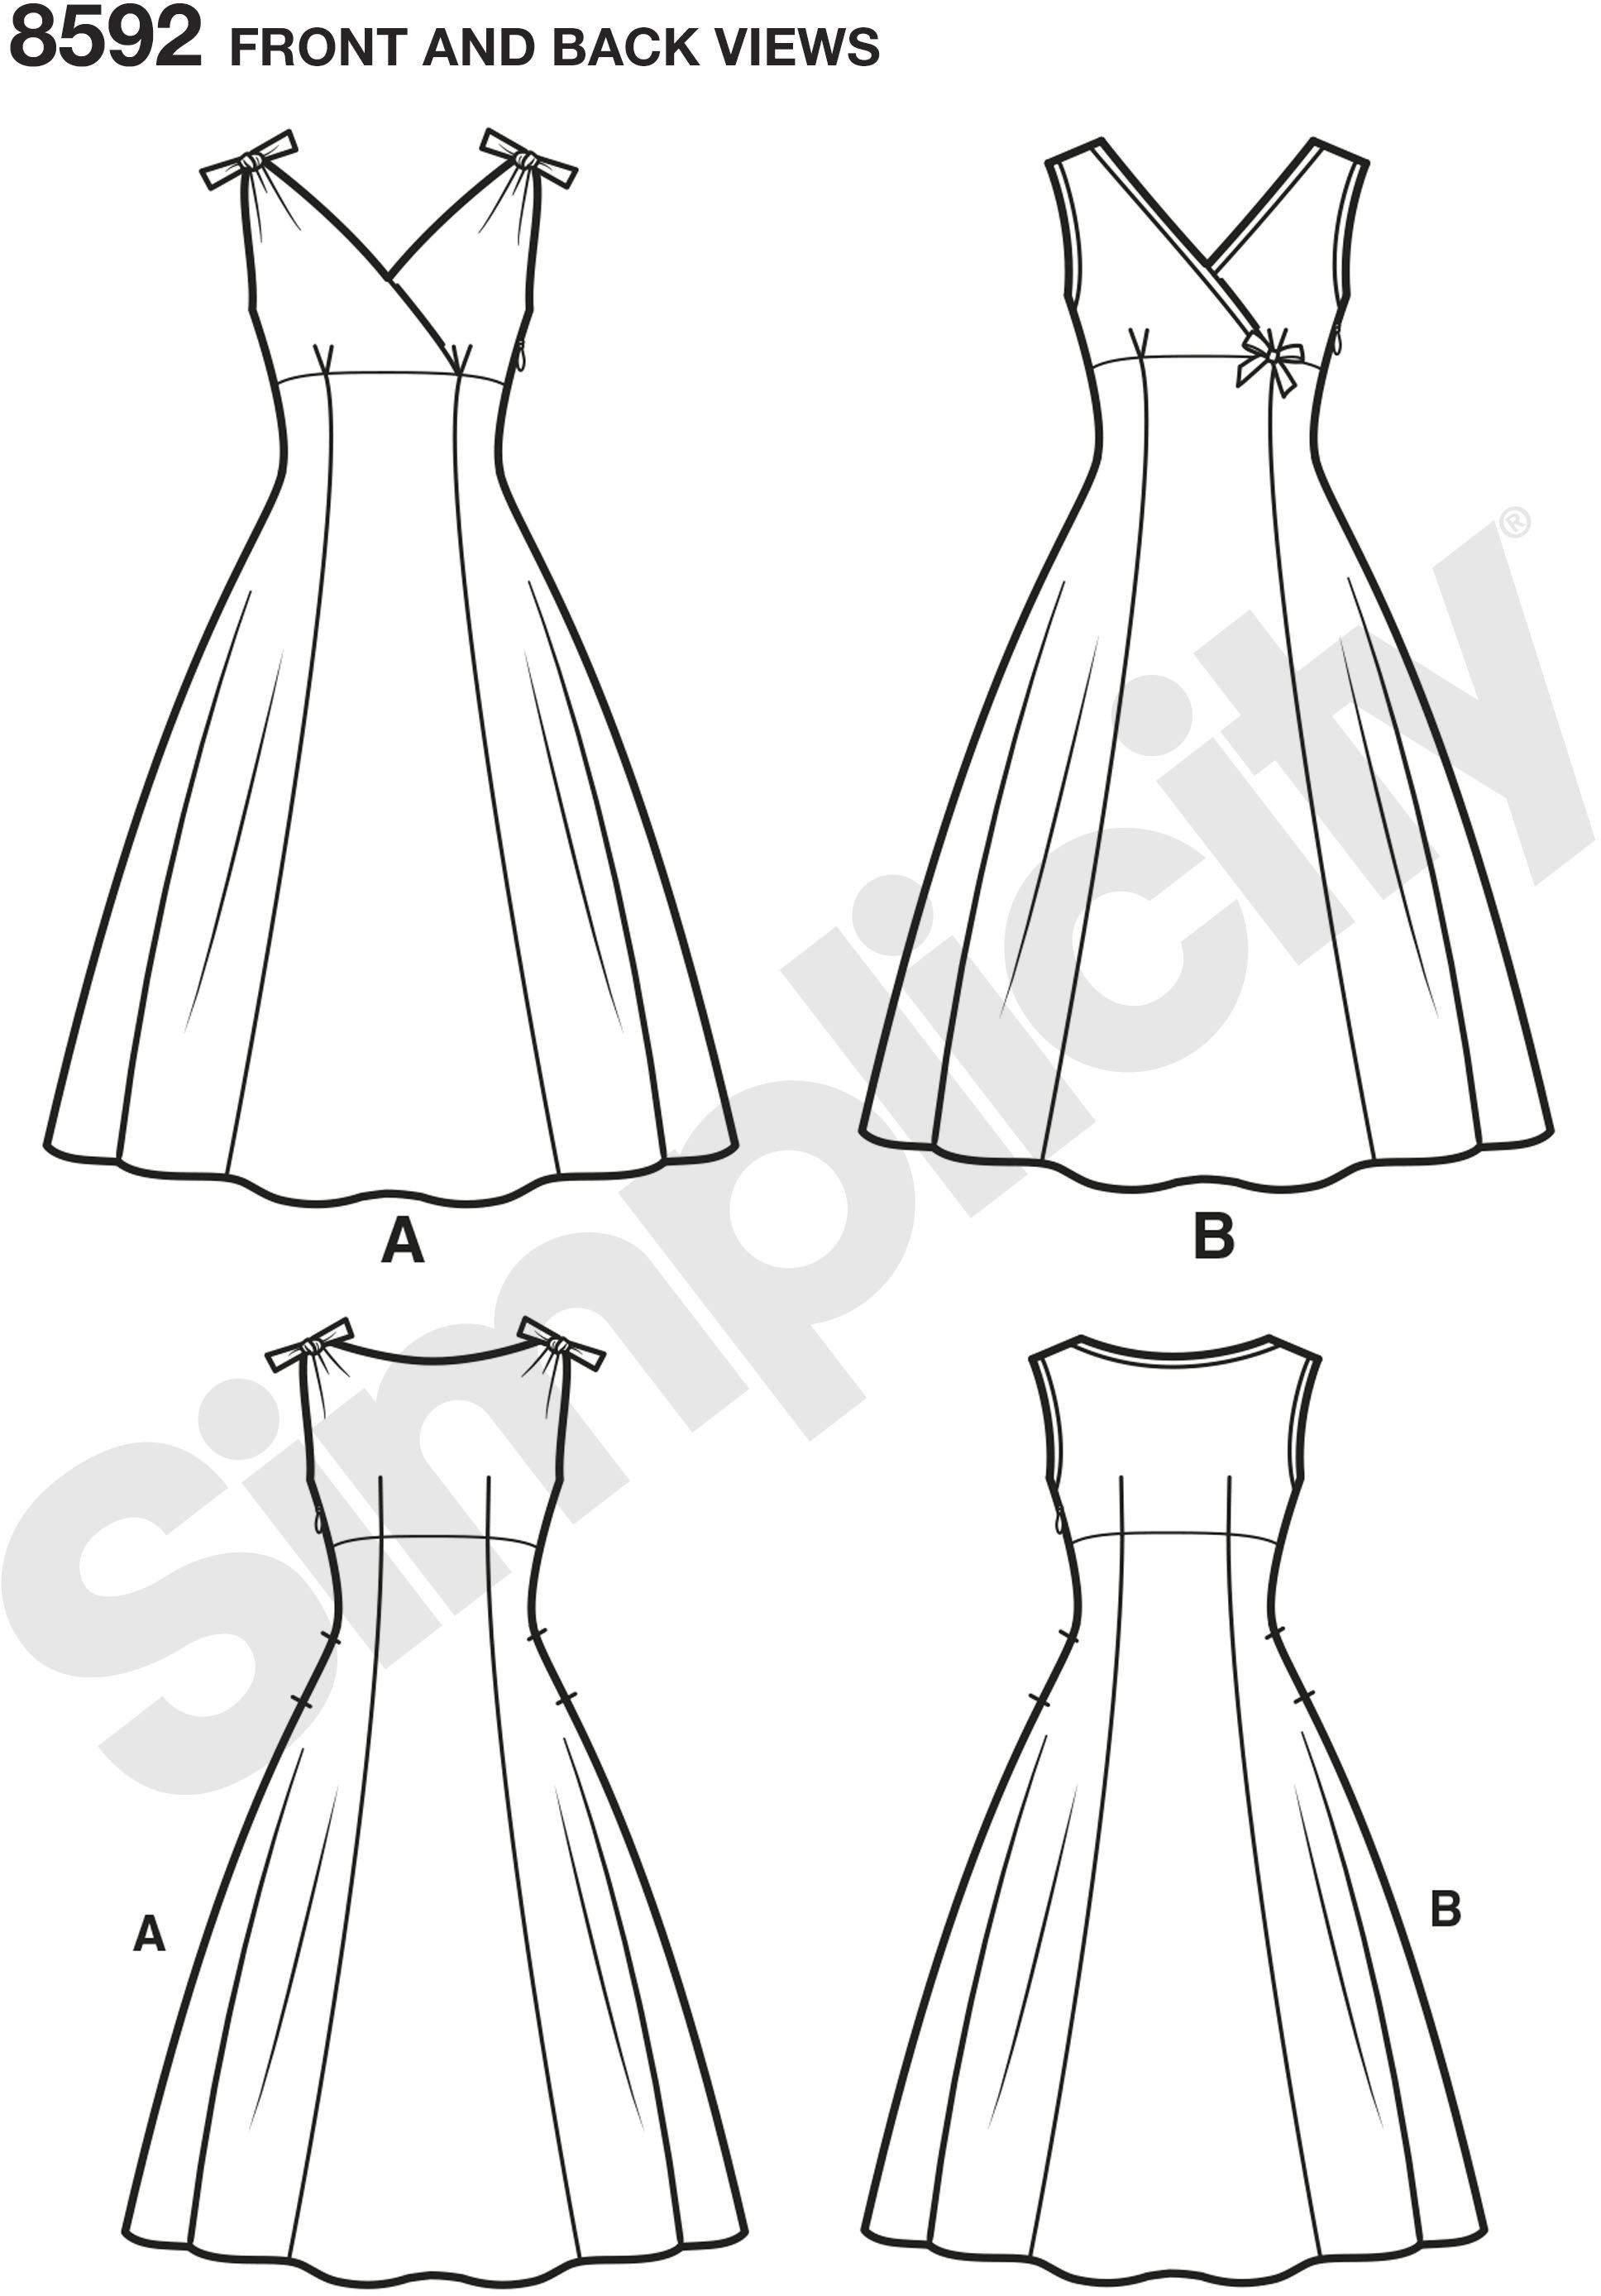 This Simplicity vintage pattern circa 1950s features a flattering sleeveless dress with empire lines. Simplicity authentic vintage sewing pattern styled for Misses and Women.